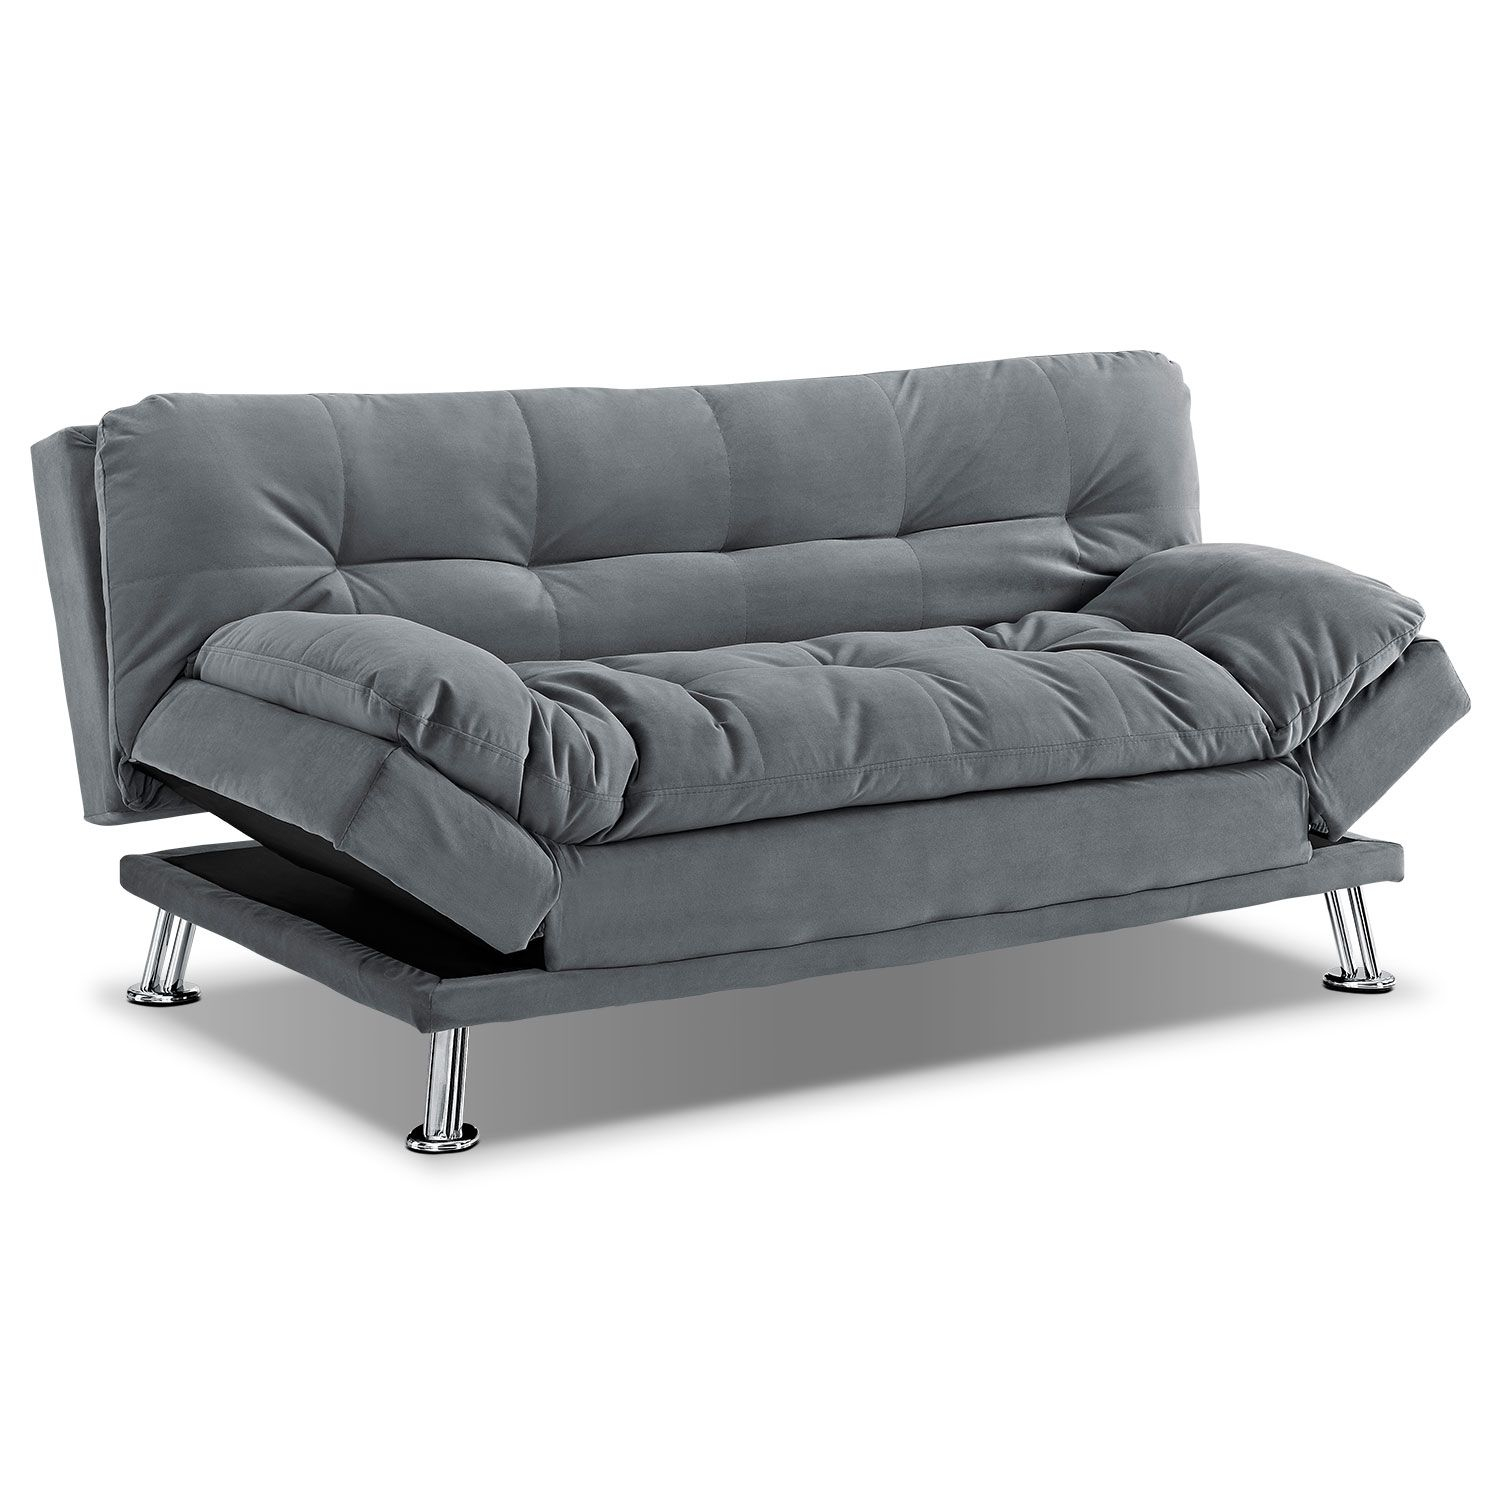 Waltz Gray Futon Sofa Bed | Value City Furniture | Bel Air Move For Moana Blue Leather Power Reclining Sofa Chairs With Usb (Photo 8 of 20)